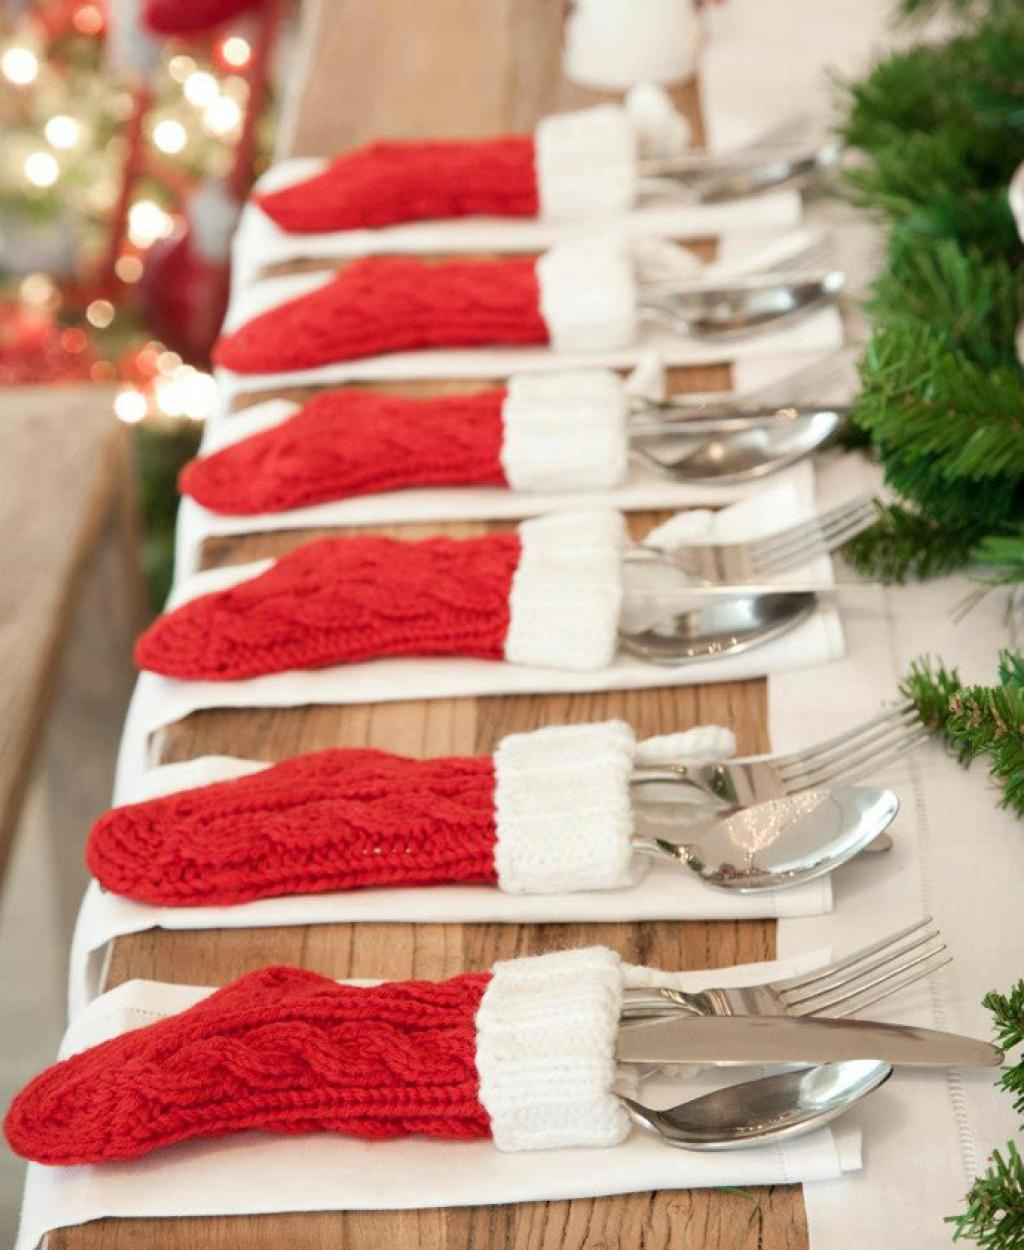 3 silverware stockings - Simple Christmas Table Decorations